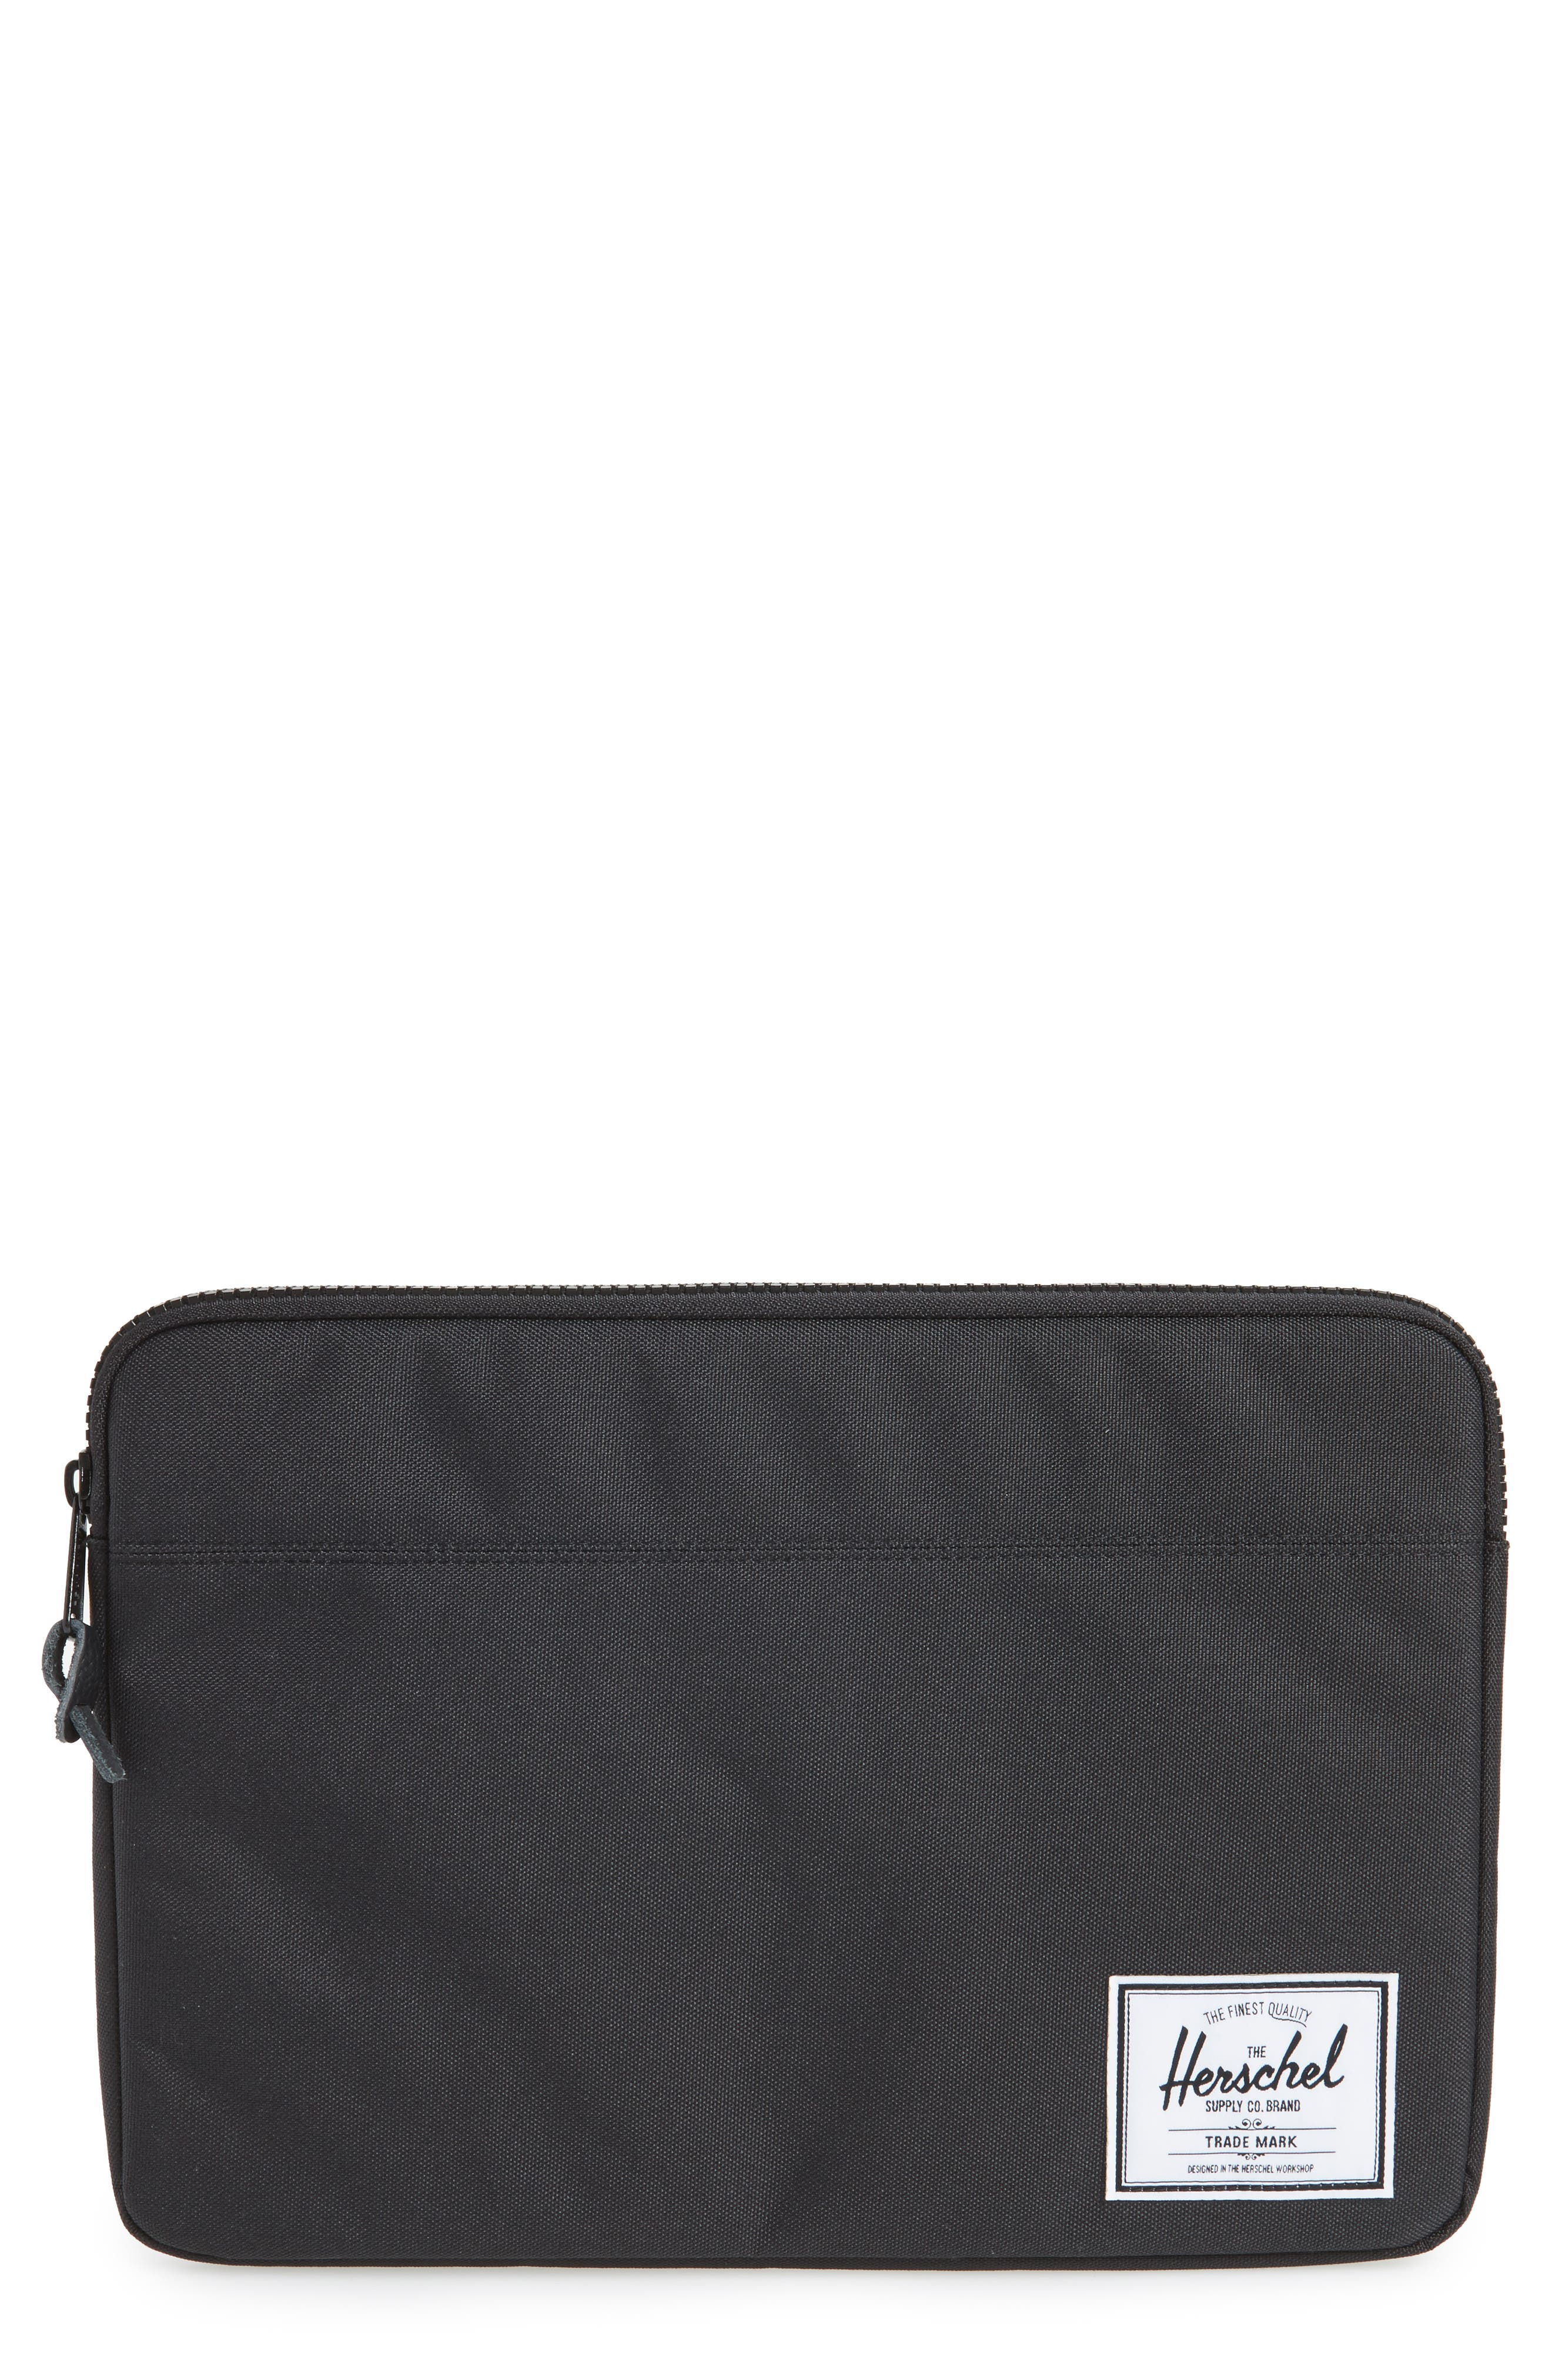 Main Image - Herschel Supply Co. Anchor Laptop Sleeve